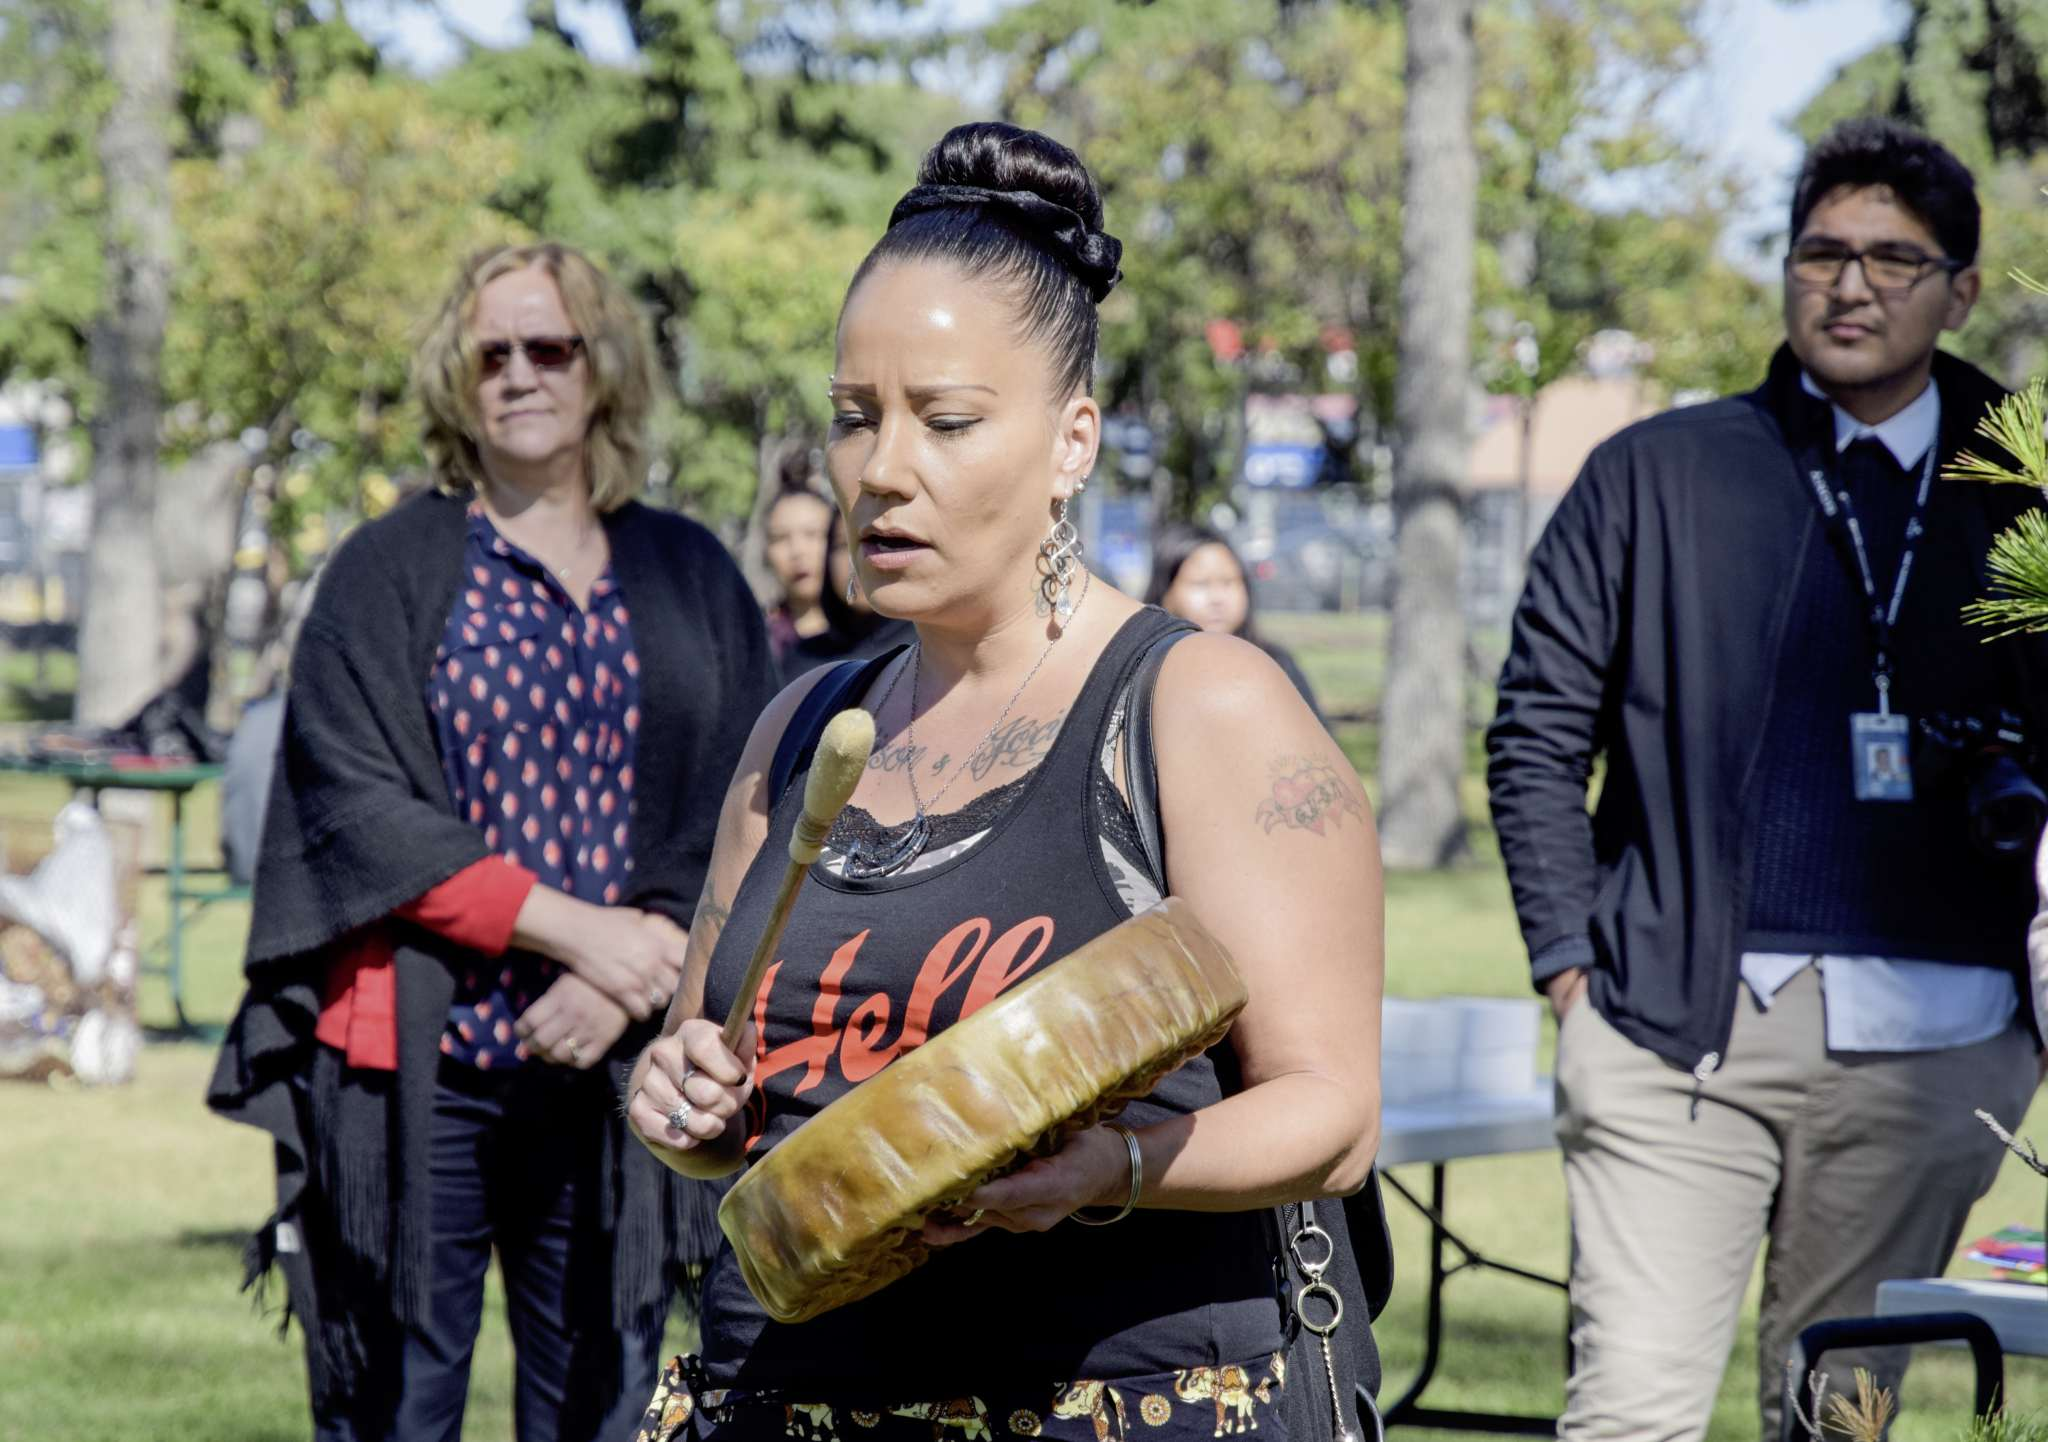 Sherry Nolin of Klinic's Dream Catchers drum group performs during a World Suicide Prevention Day event at Vimy Ridge Memorial Park on Sept. 10.